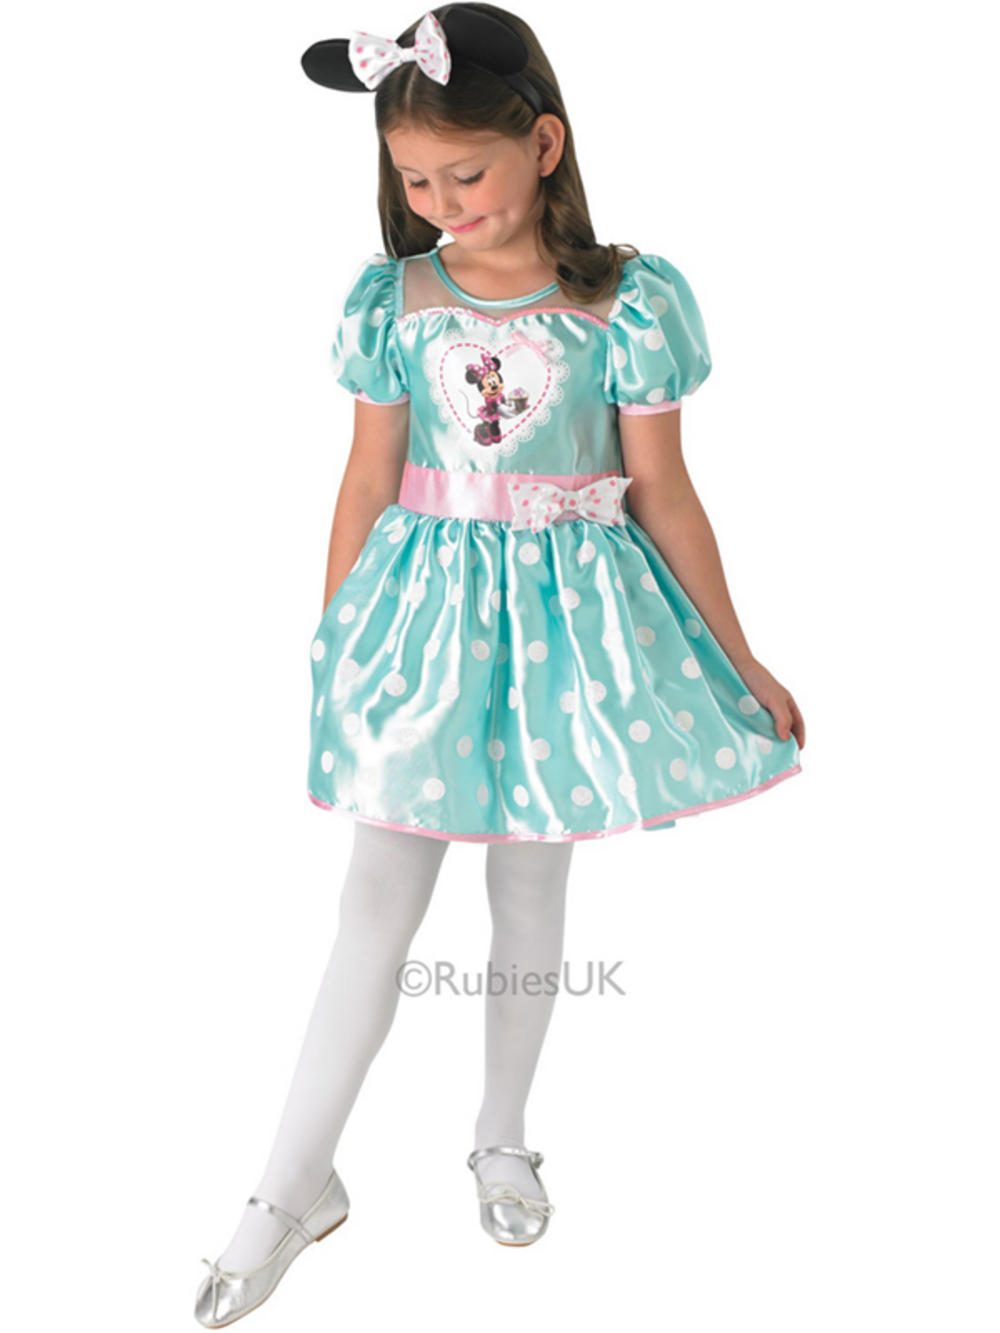 Childrens Girls Minnie Mouse Fancy Dress Costume- Size: Large for - Compare prices of products in Baby & Kid's Clothes from Online Stores in Australia. Save with russia-youtube.tk!